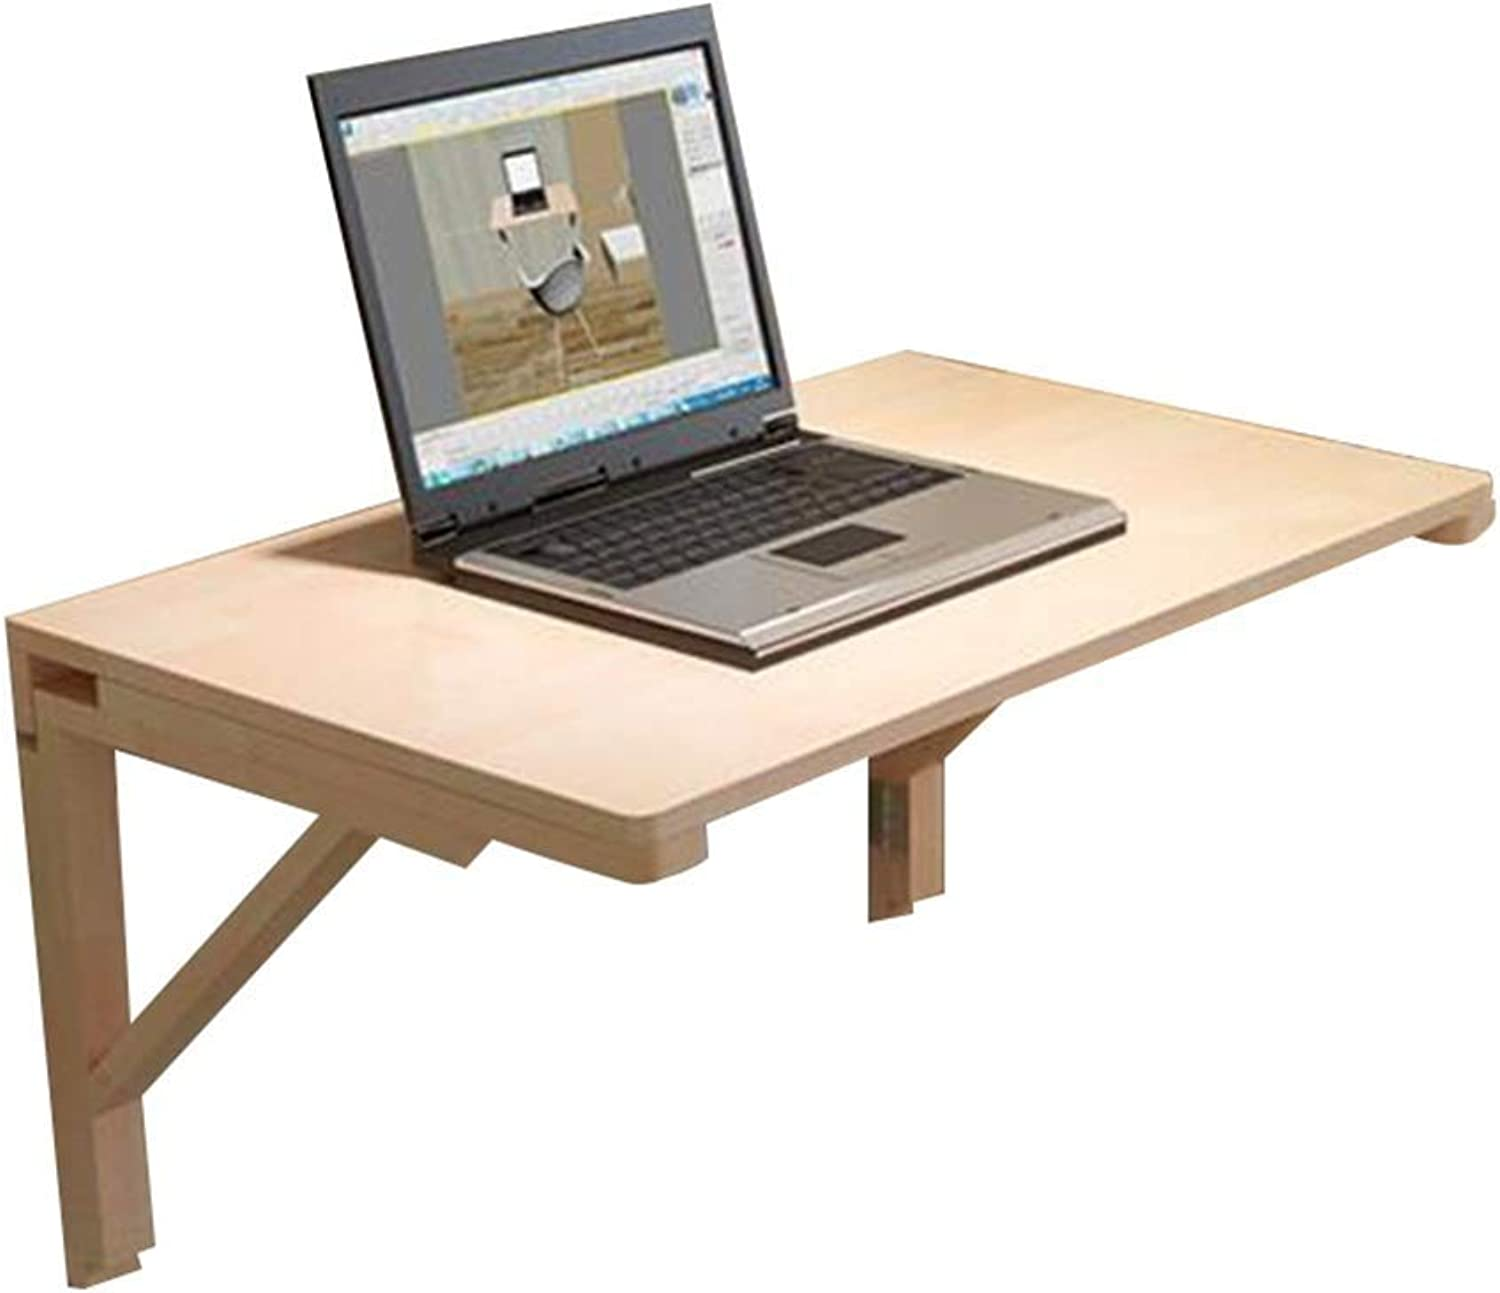 Folding Wall-mounted Table Multifunction Laptop Stand Kitchen Shelves Space Saving Solid Wood, 11 Sizes GAOFENG (color   Wood, Size   60x40cm)